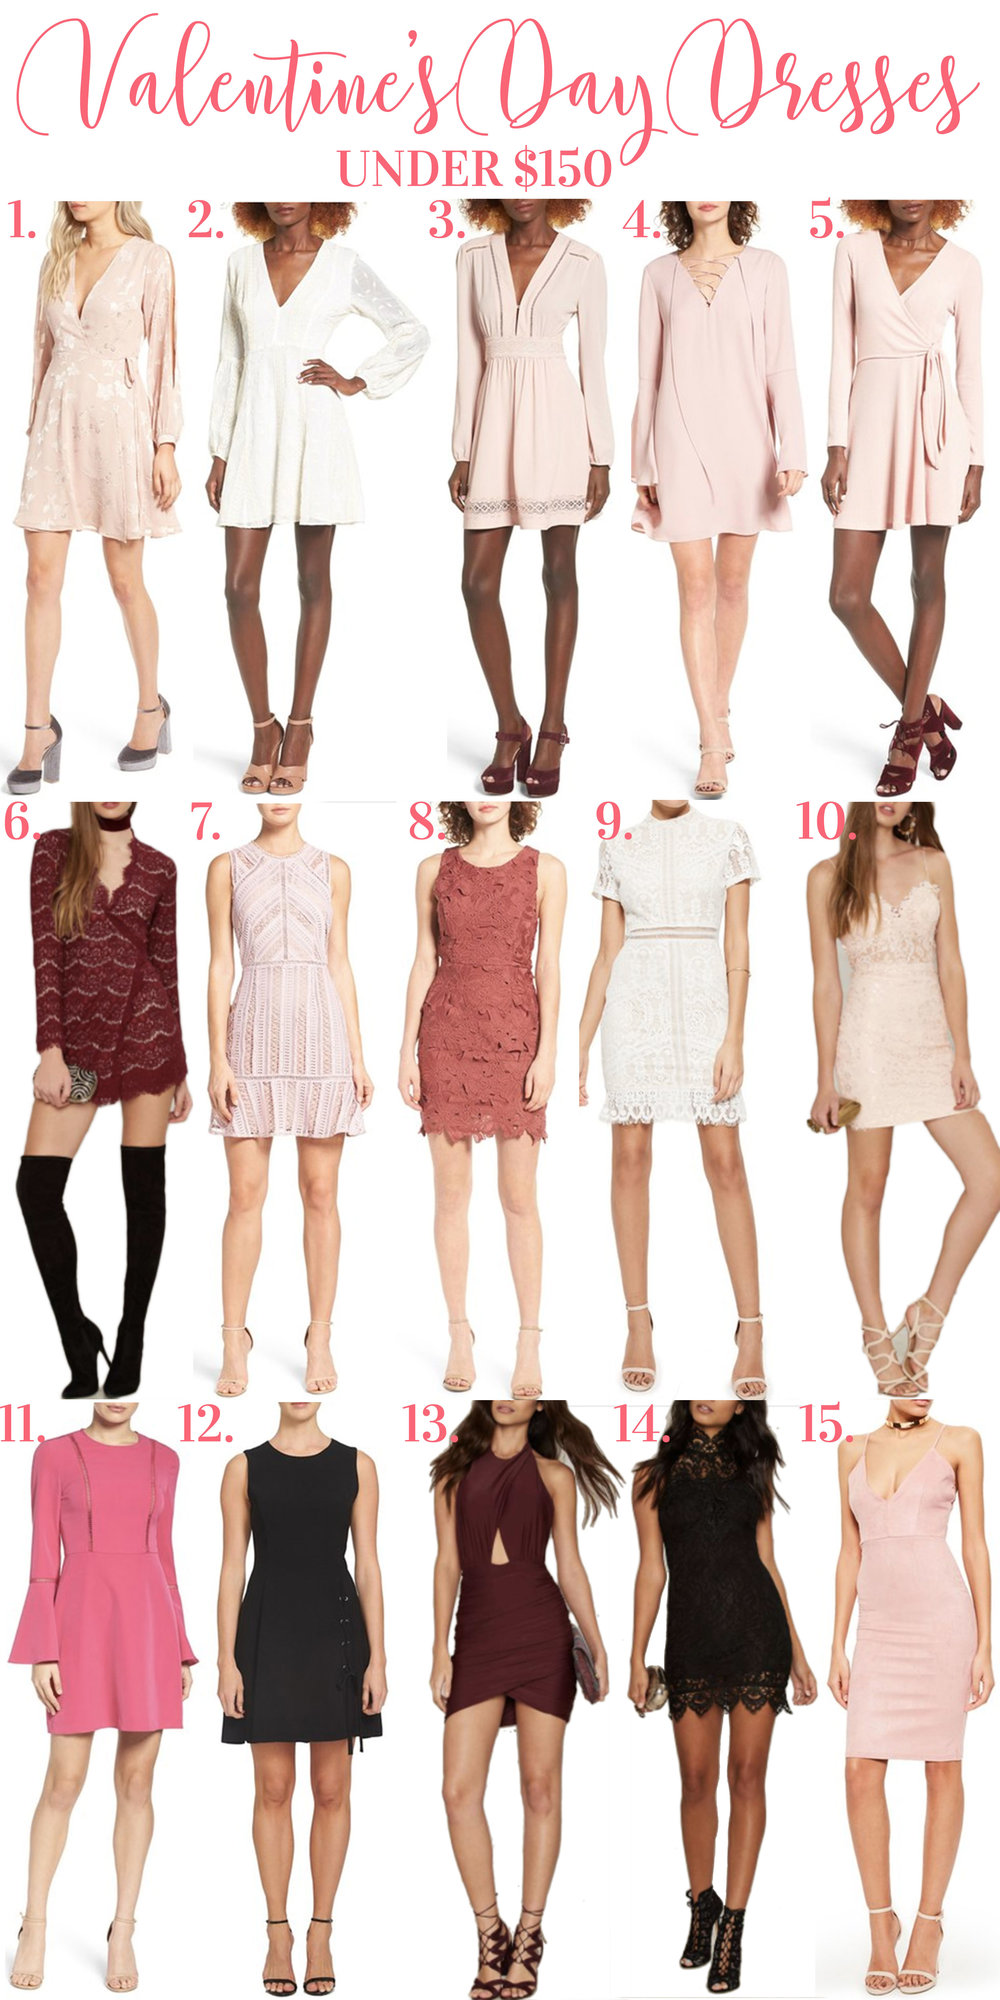 Affordable Valentine's Day dresses.  Dresses for Valentine's Day under $150.